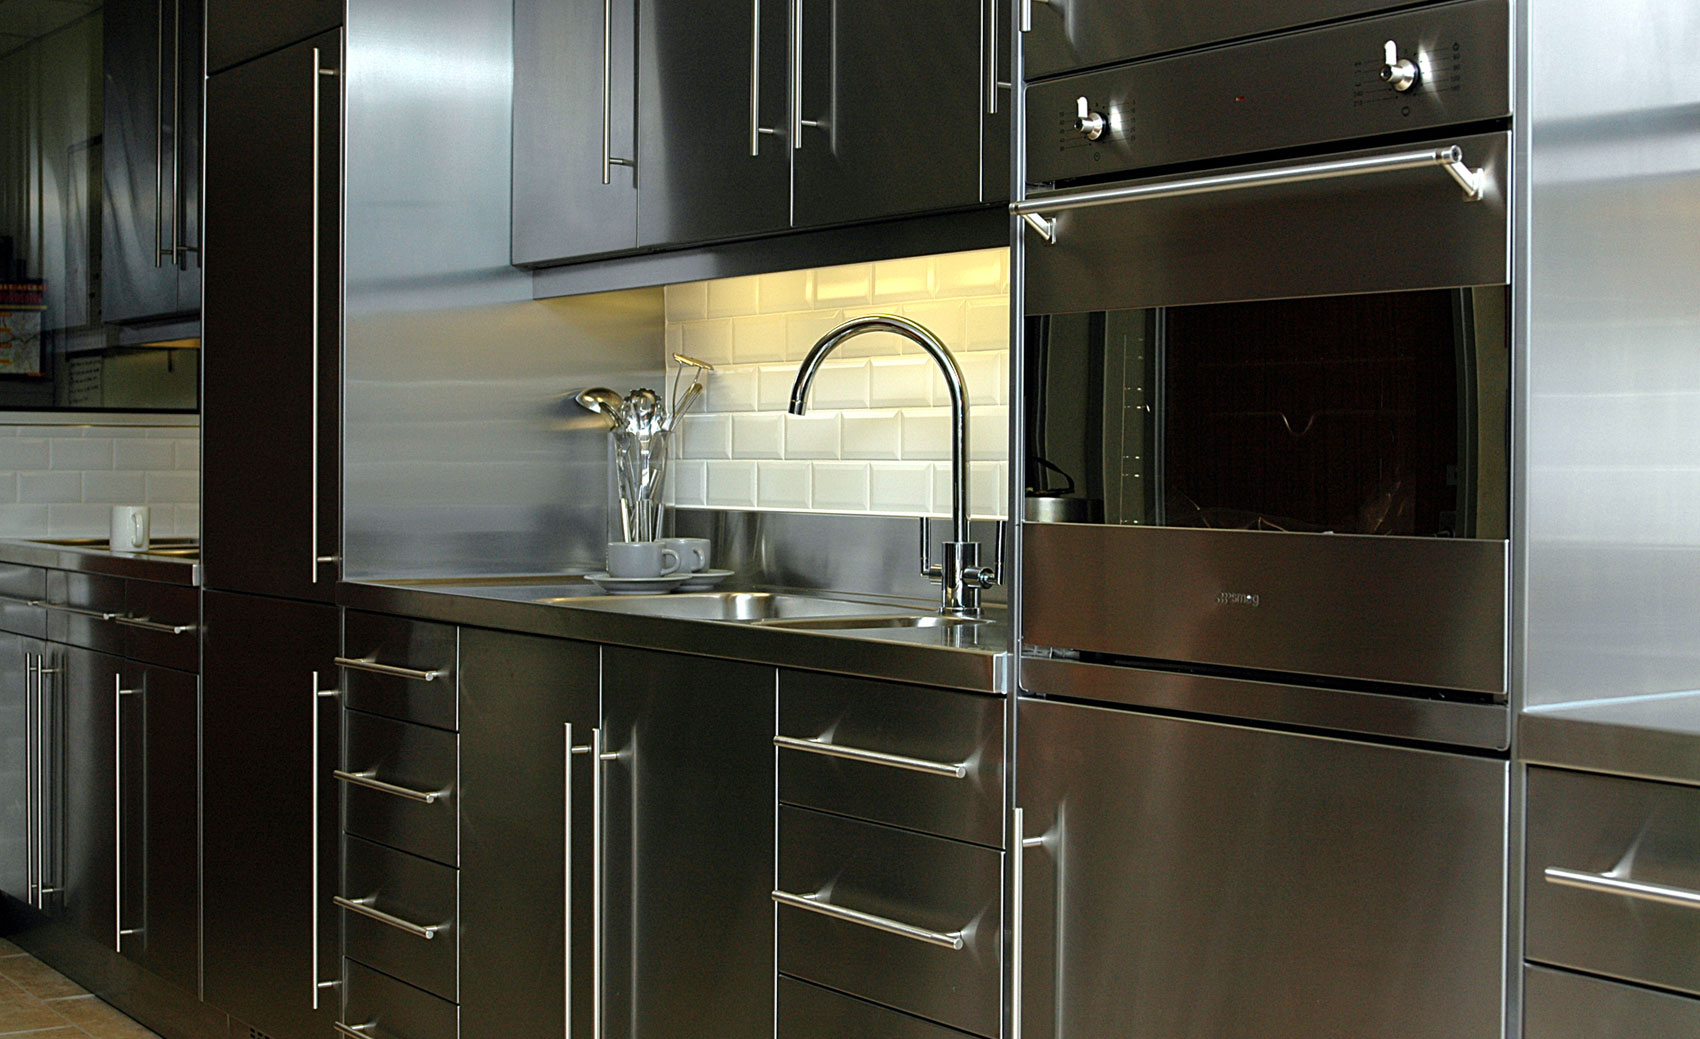 stainless kitchen apartment size appliances steel cabinet worktops splash backs uk cavendish equipment